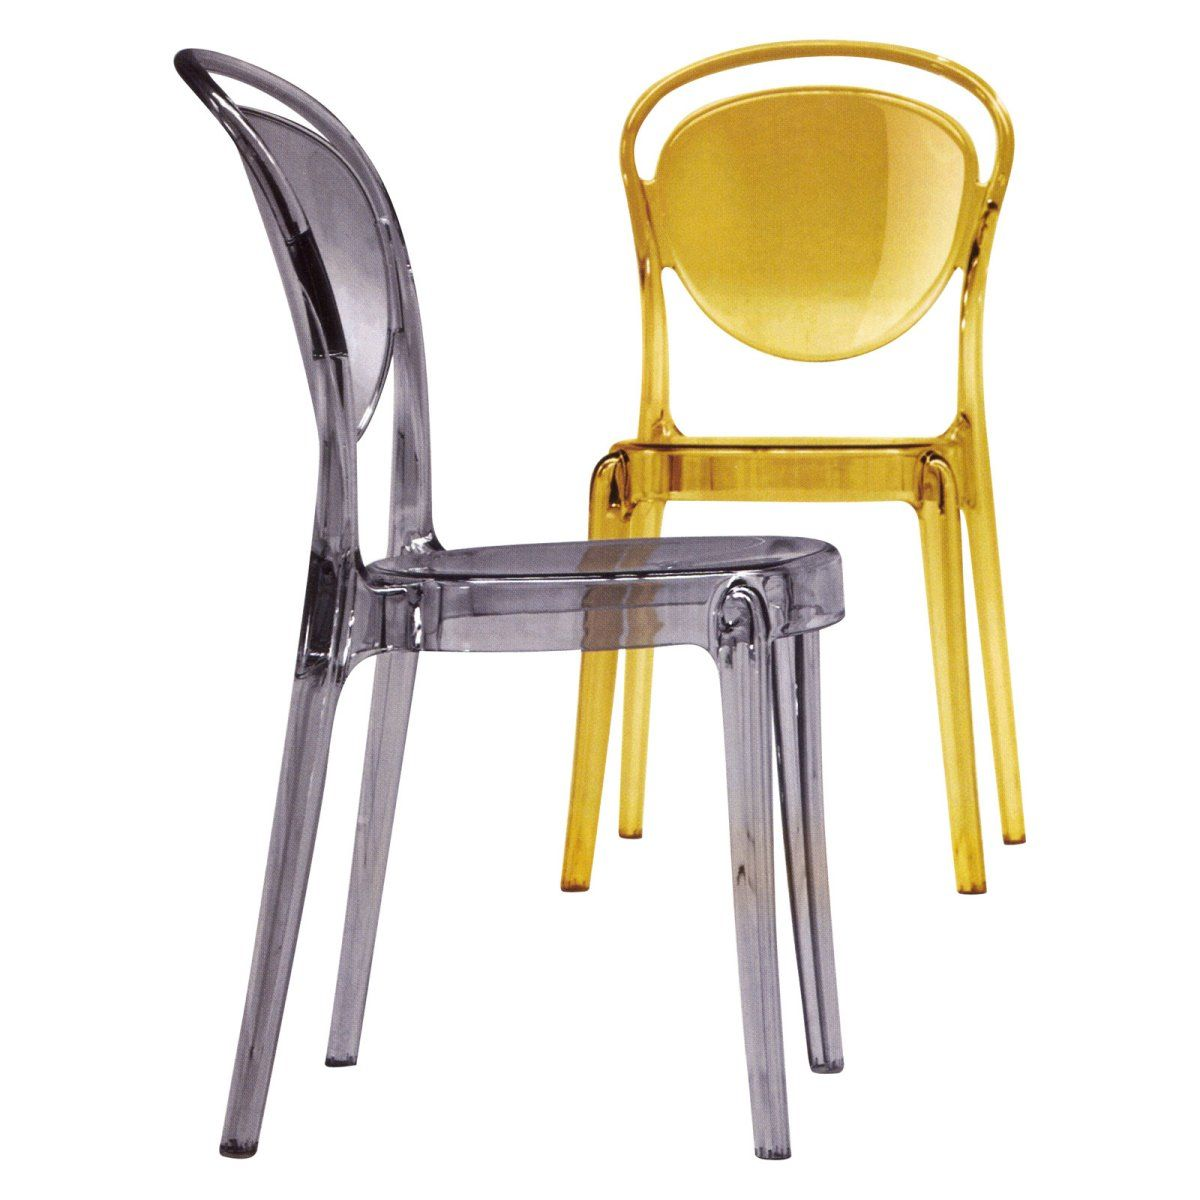 Calligaris Parisienne Dining Chair - Set of 2 - Casual Dining Chairs at Hayneedle 482  sc 1 st  Pinterest & Calligaris Parisienne Dining Chair - Set of 2 - Casual Dining Chairs ...